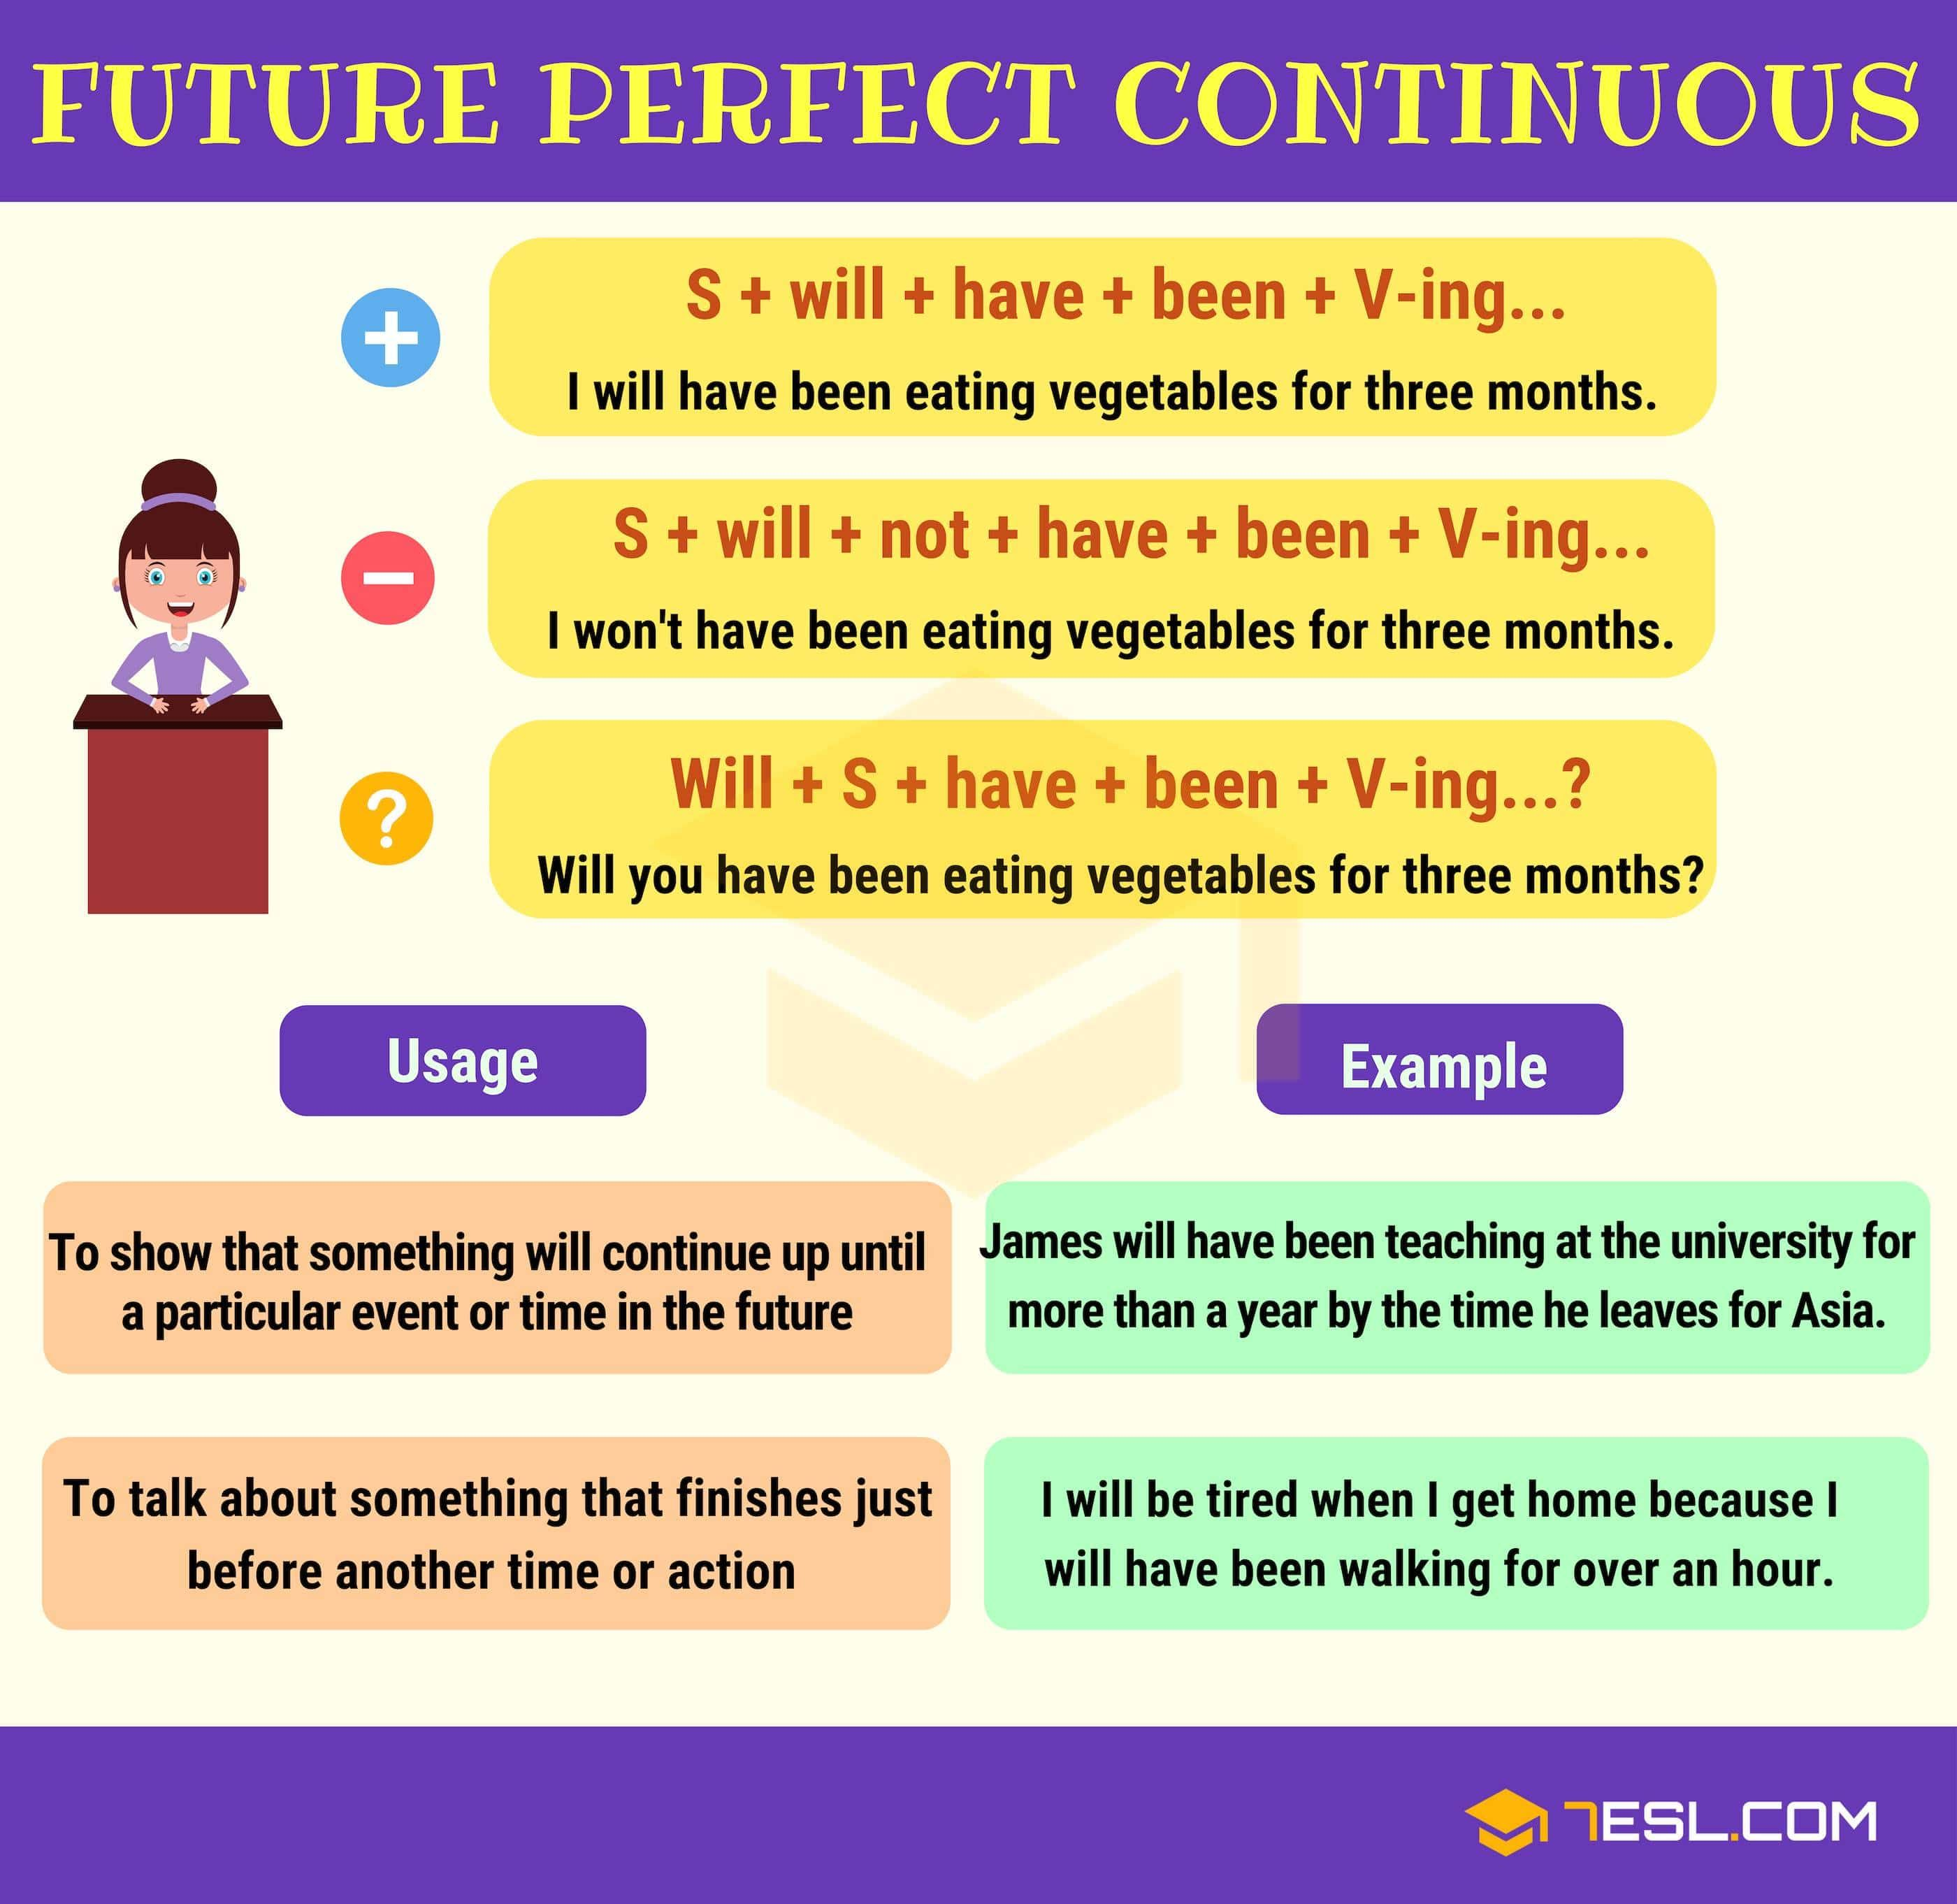 Future Perfect Continuous Tense Useful Rules & Examples